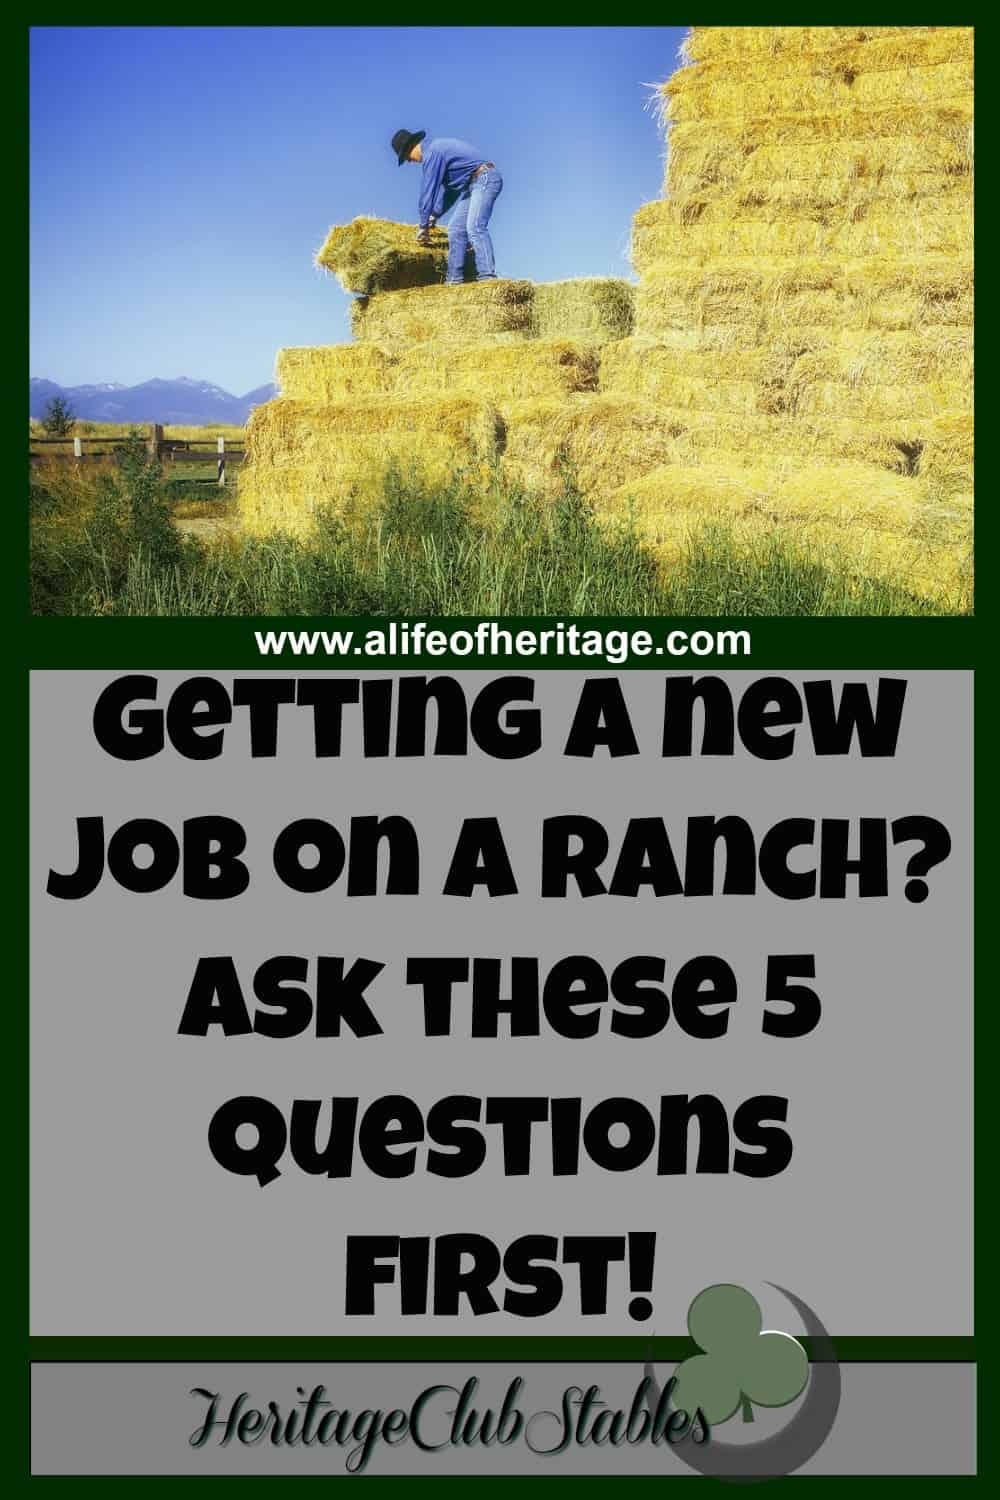 Cowboy Lifestyle | New Ranch Job | Cowboy | Questions For Your Ranch Boss |  5